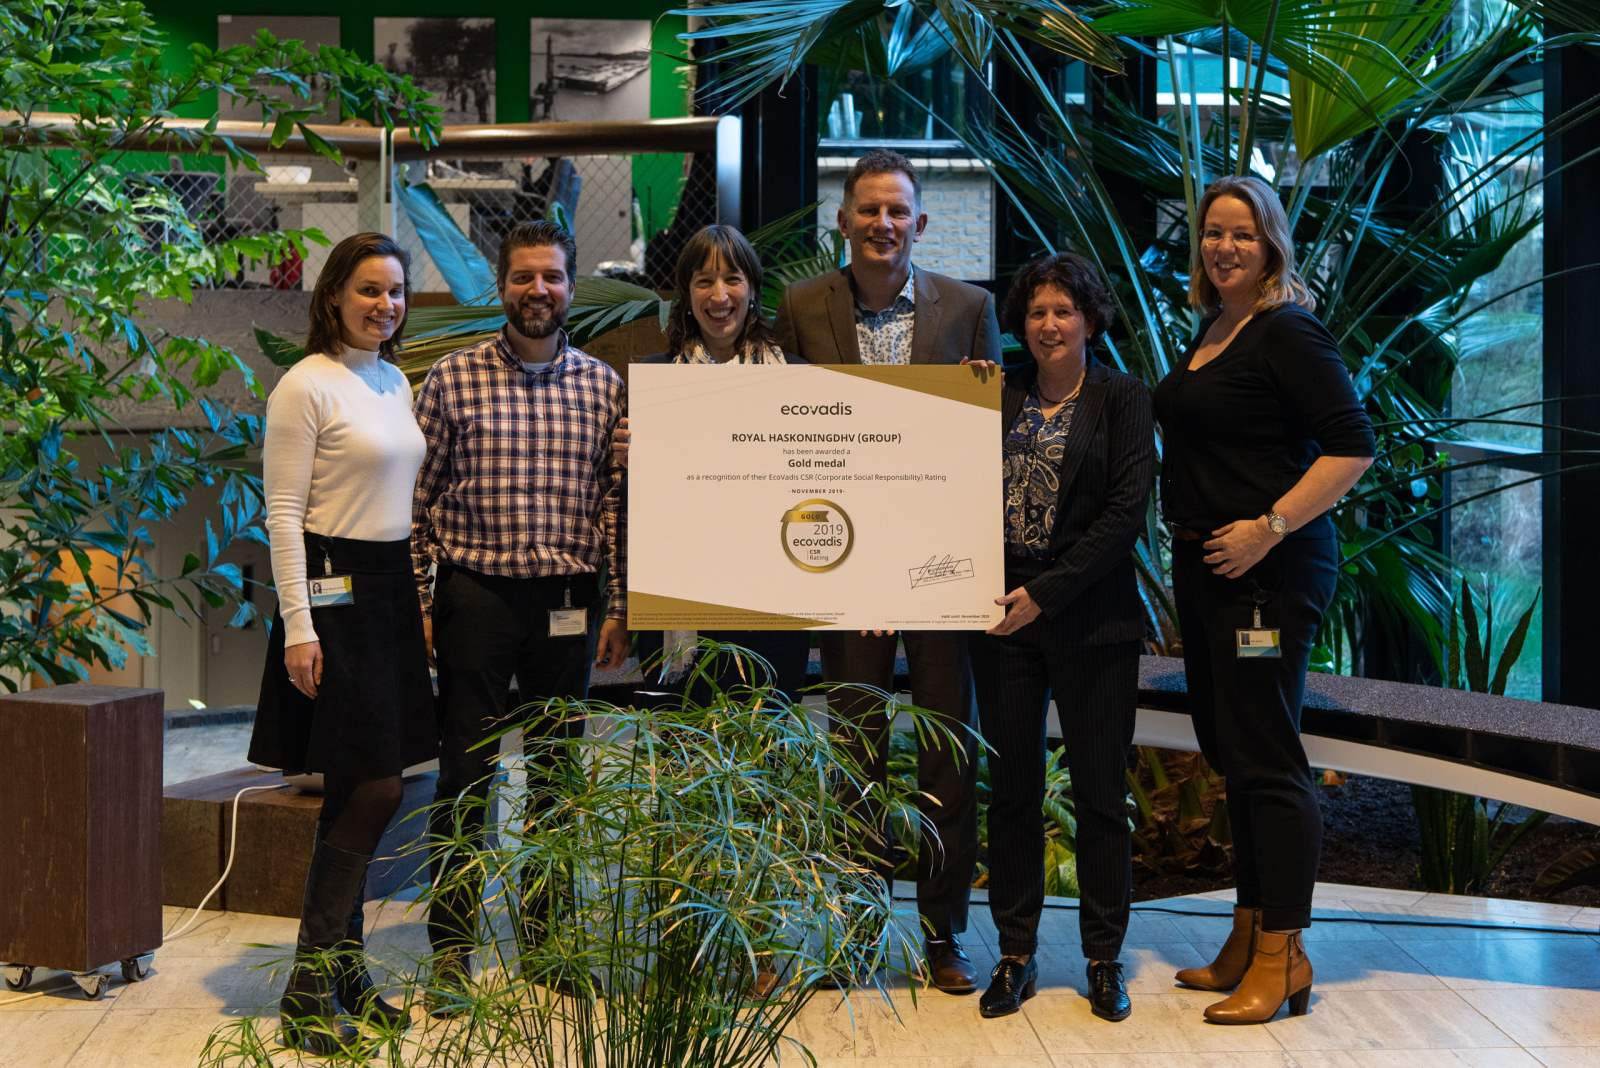 Colleagues celebrating the obtained EcoVadis gold medal in 2019 for the fourth consecutive year